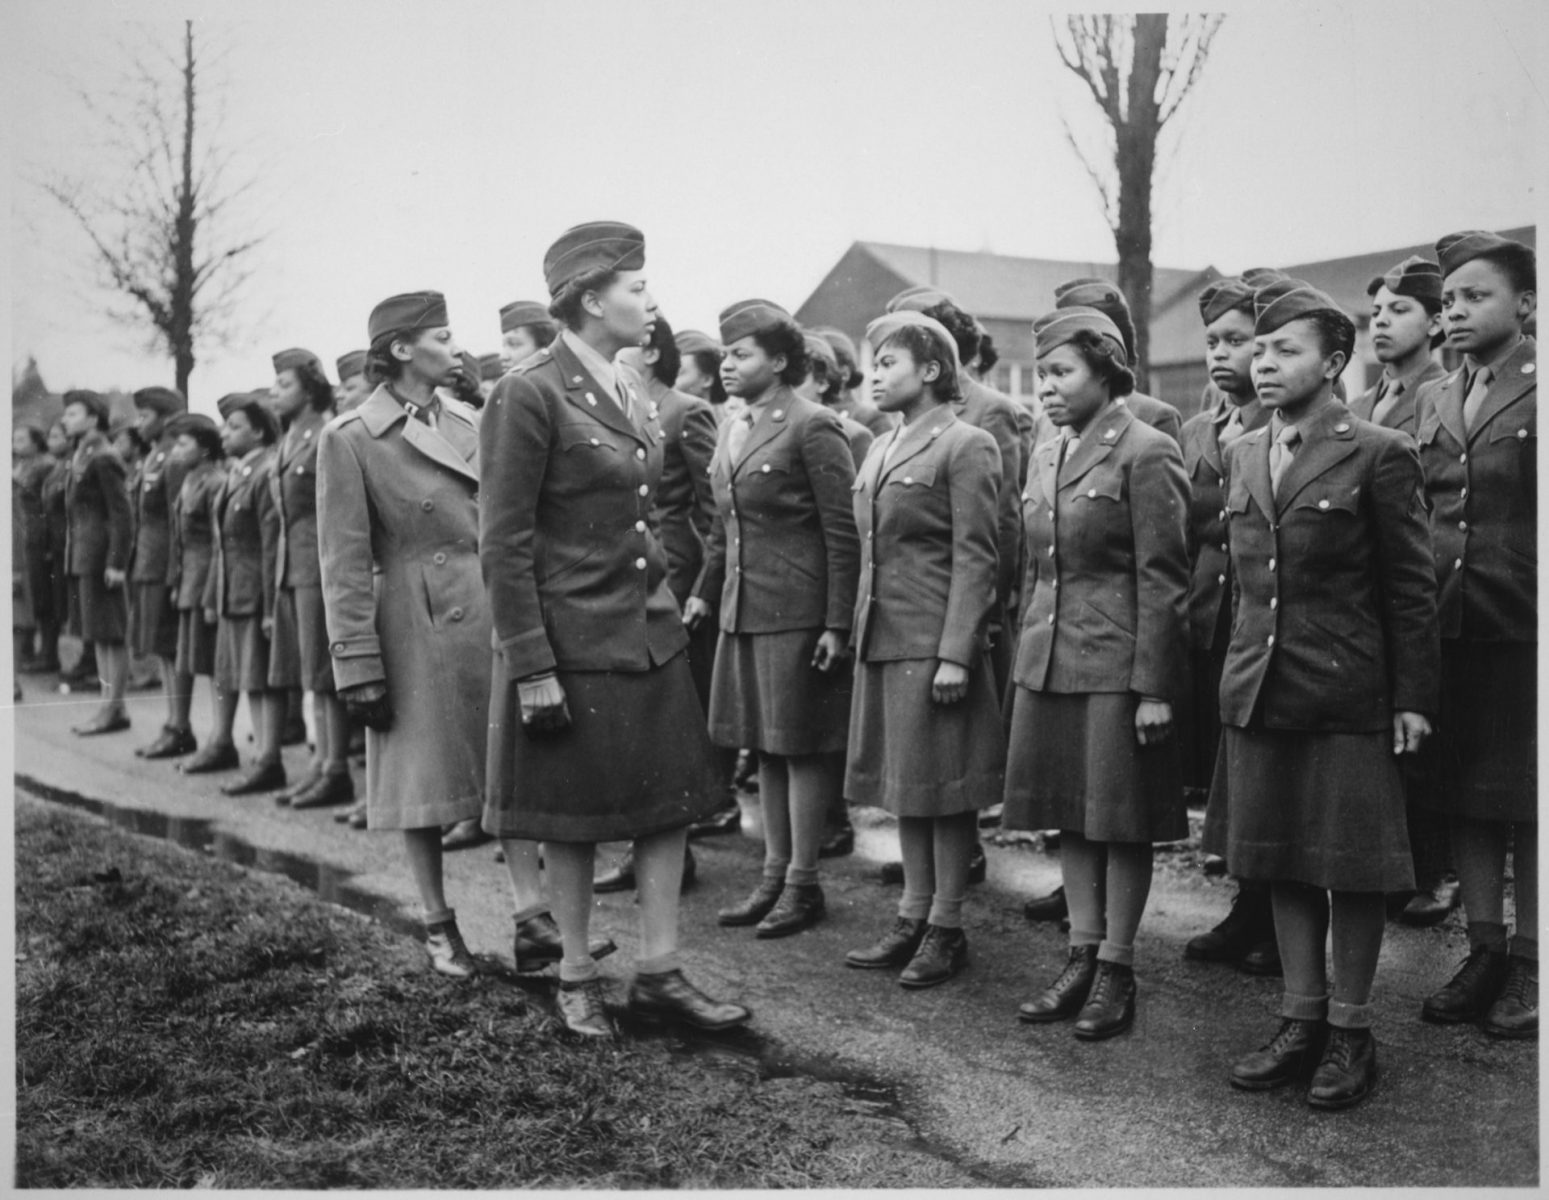 Major Colonel Charity Adams Earley and military members of the 6888th Central Postal Directory Batallion (No copyright infringement intended).